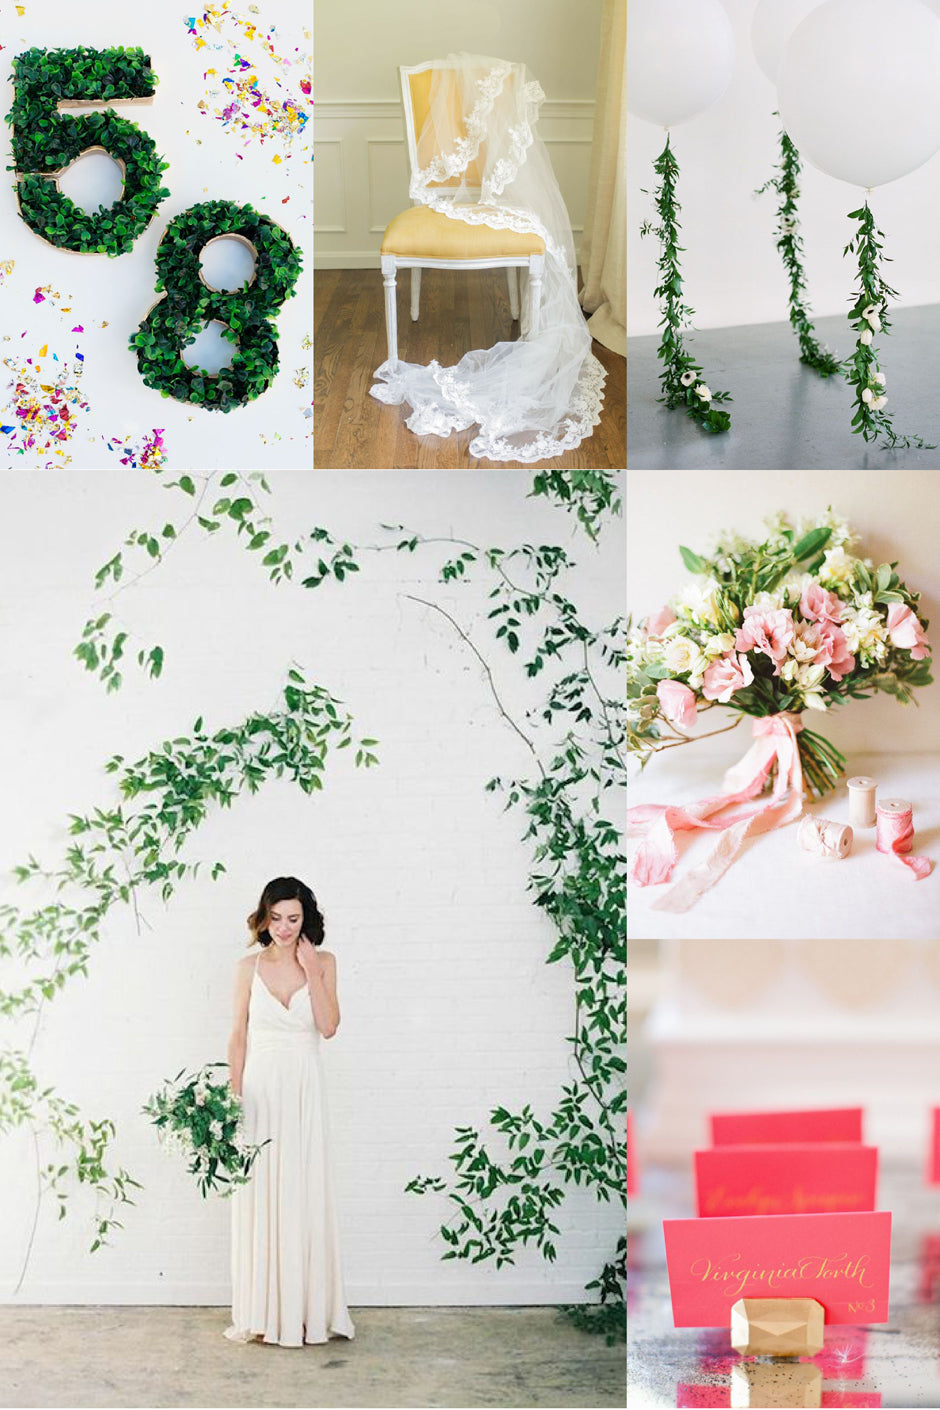 Diy wedding ideas davie chiyo diy wild vine arch diy boxwood table numbers diy lace veil diy floral garland balloon diy hand dyed ribbons diy gem escort cards holders solutioingenieria Images